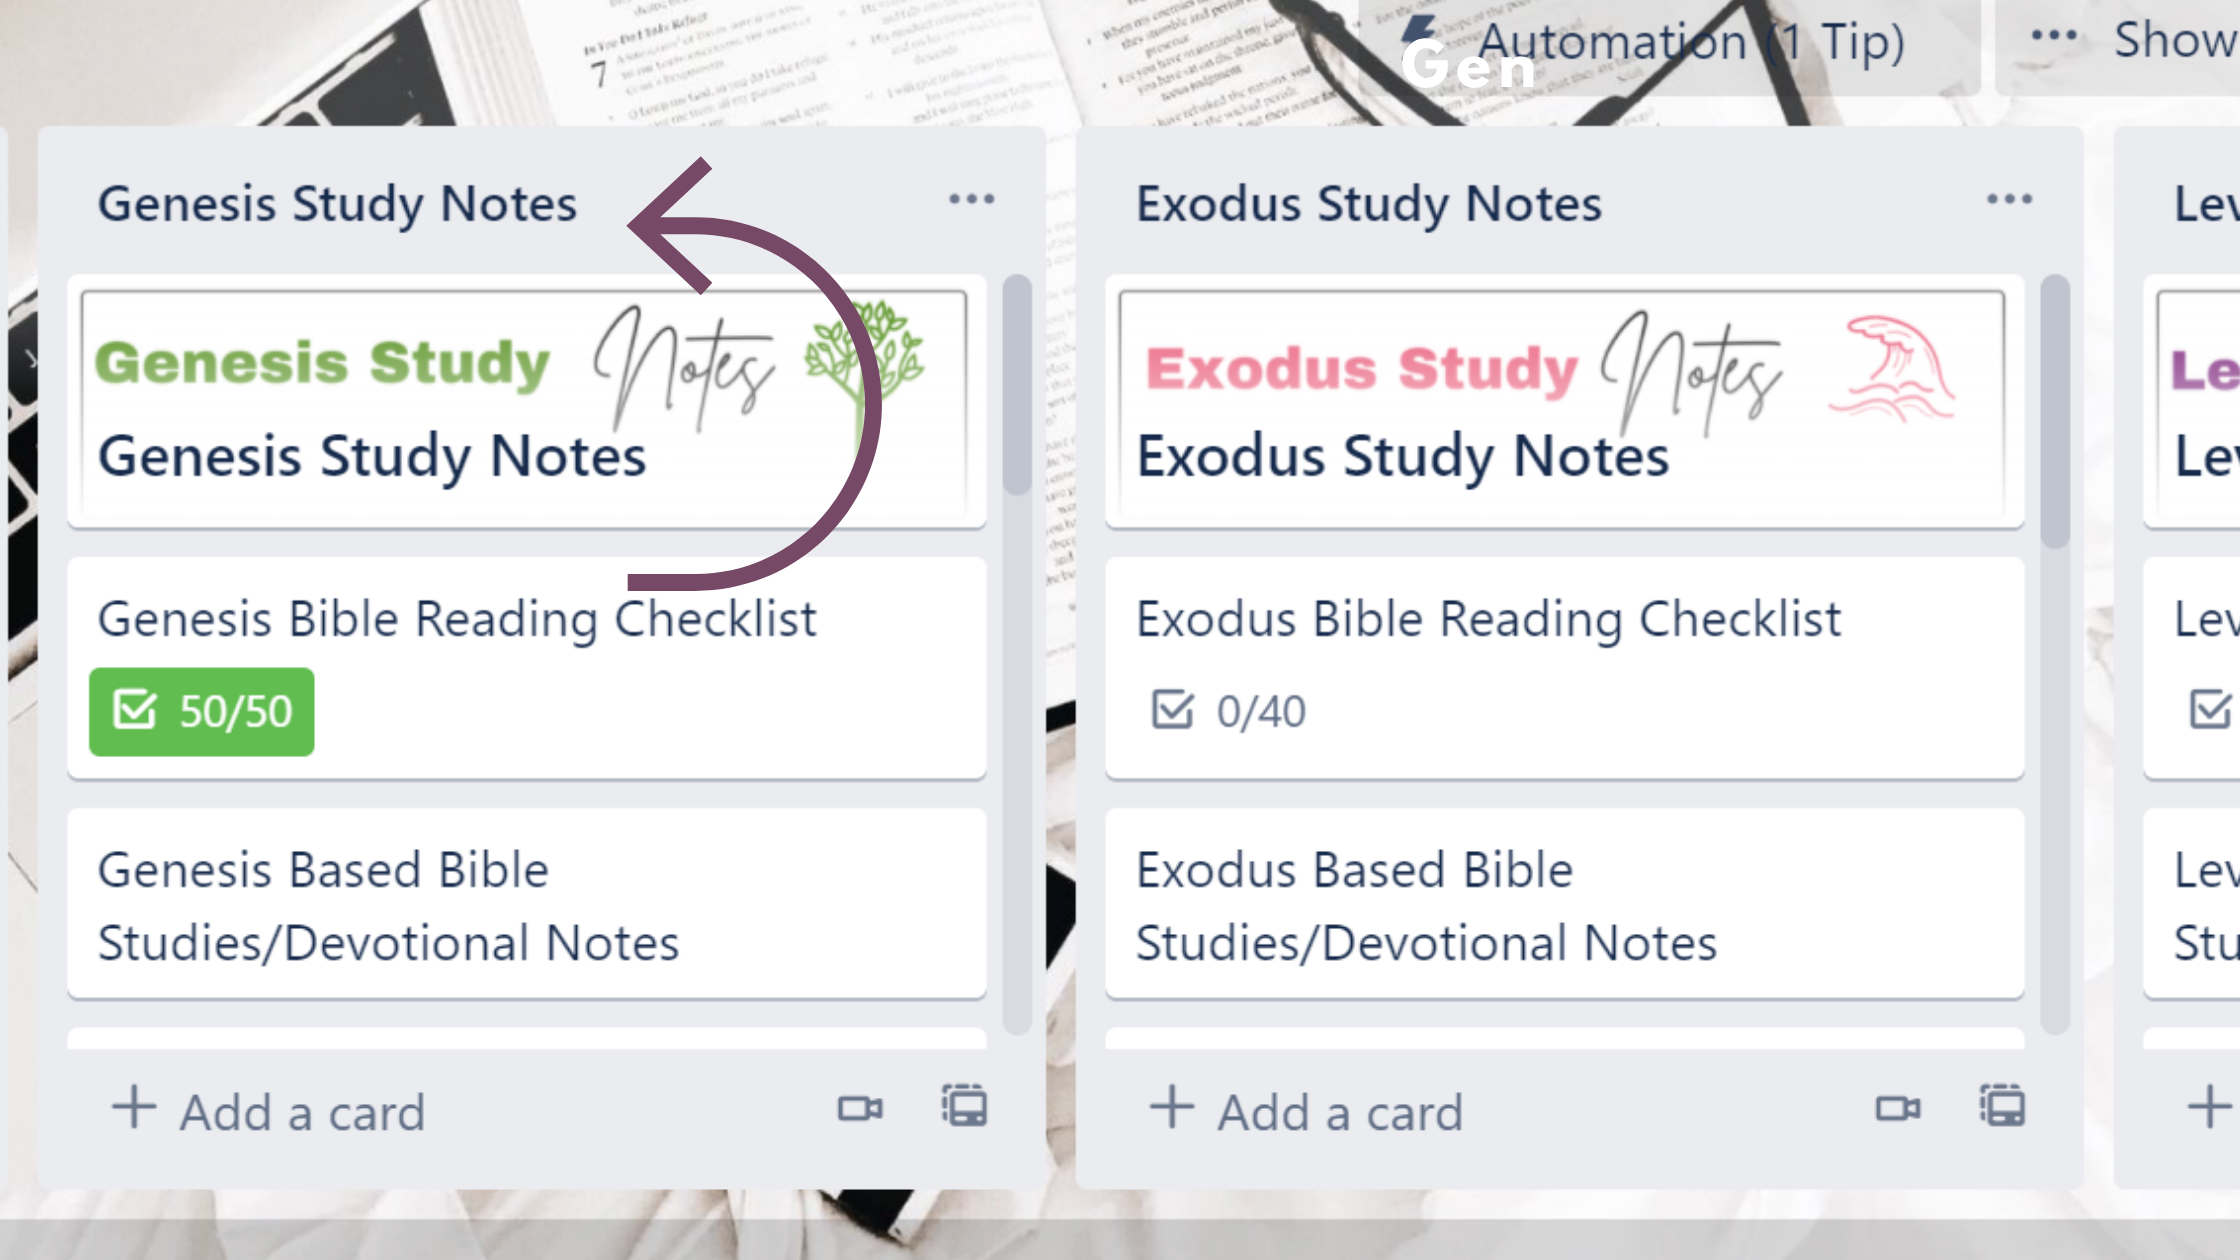 digital bible study app where I take notes on difficult parts of the bible